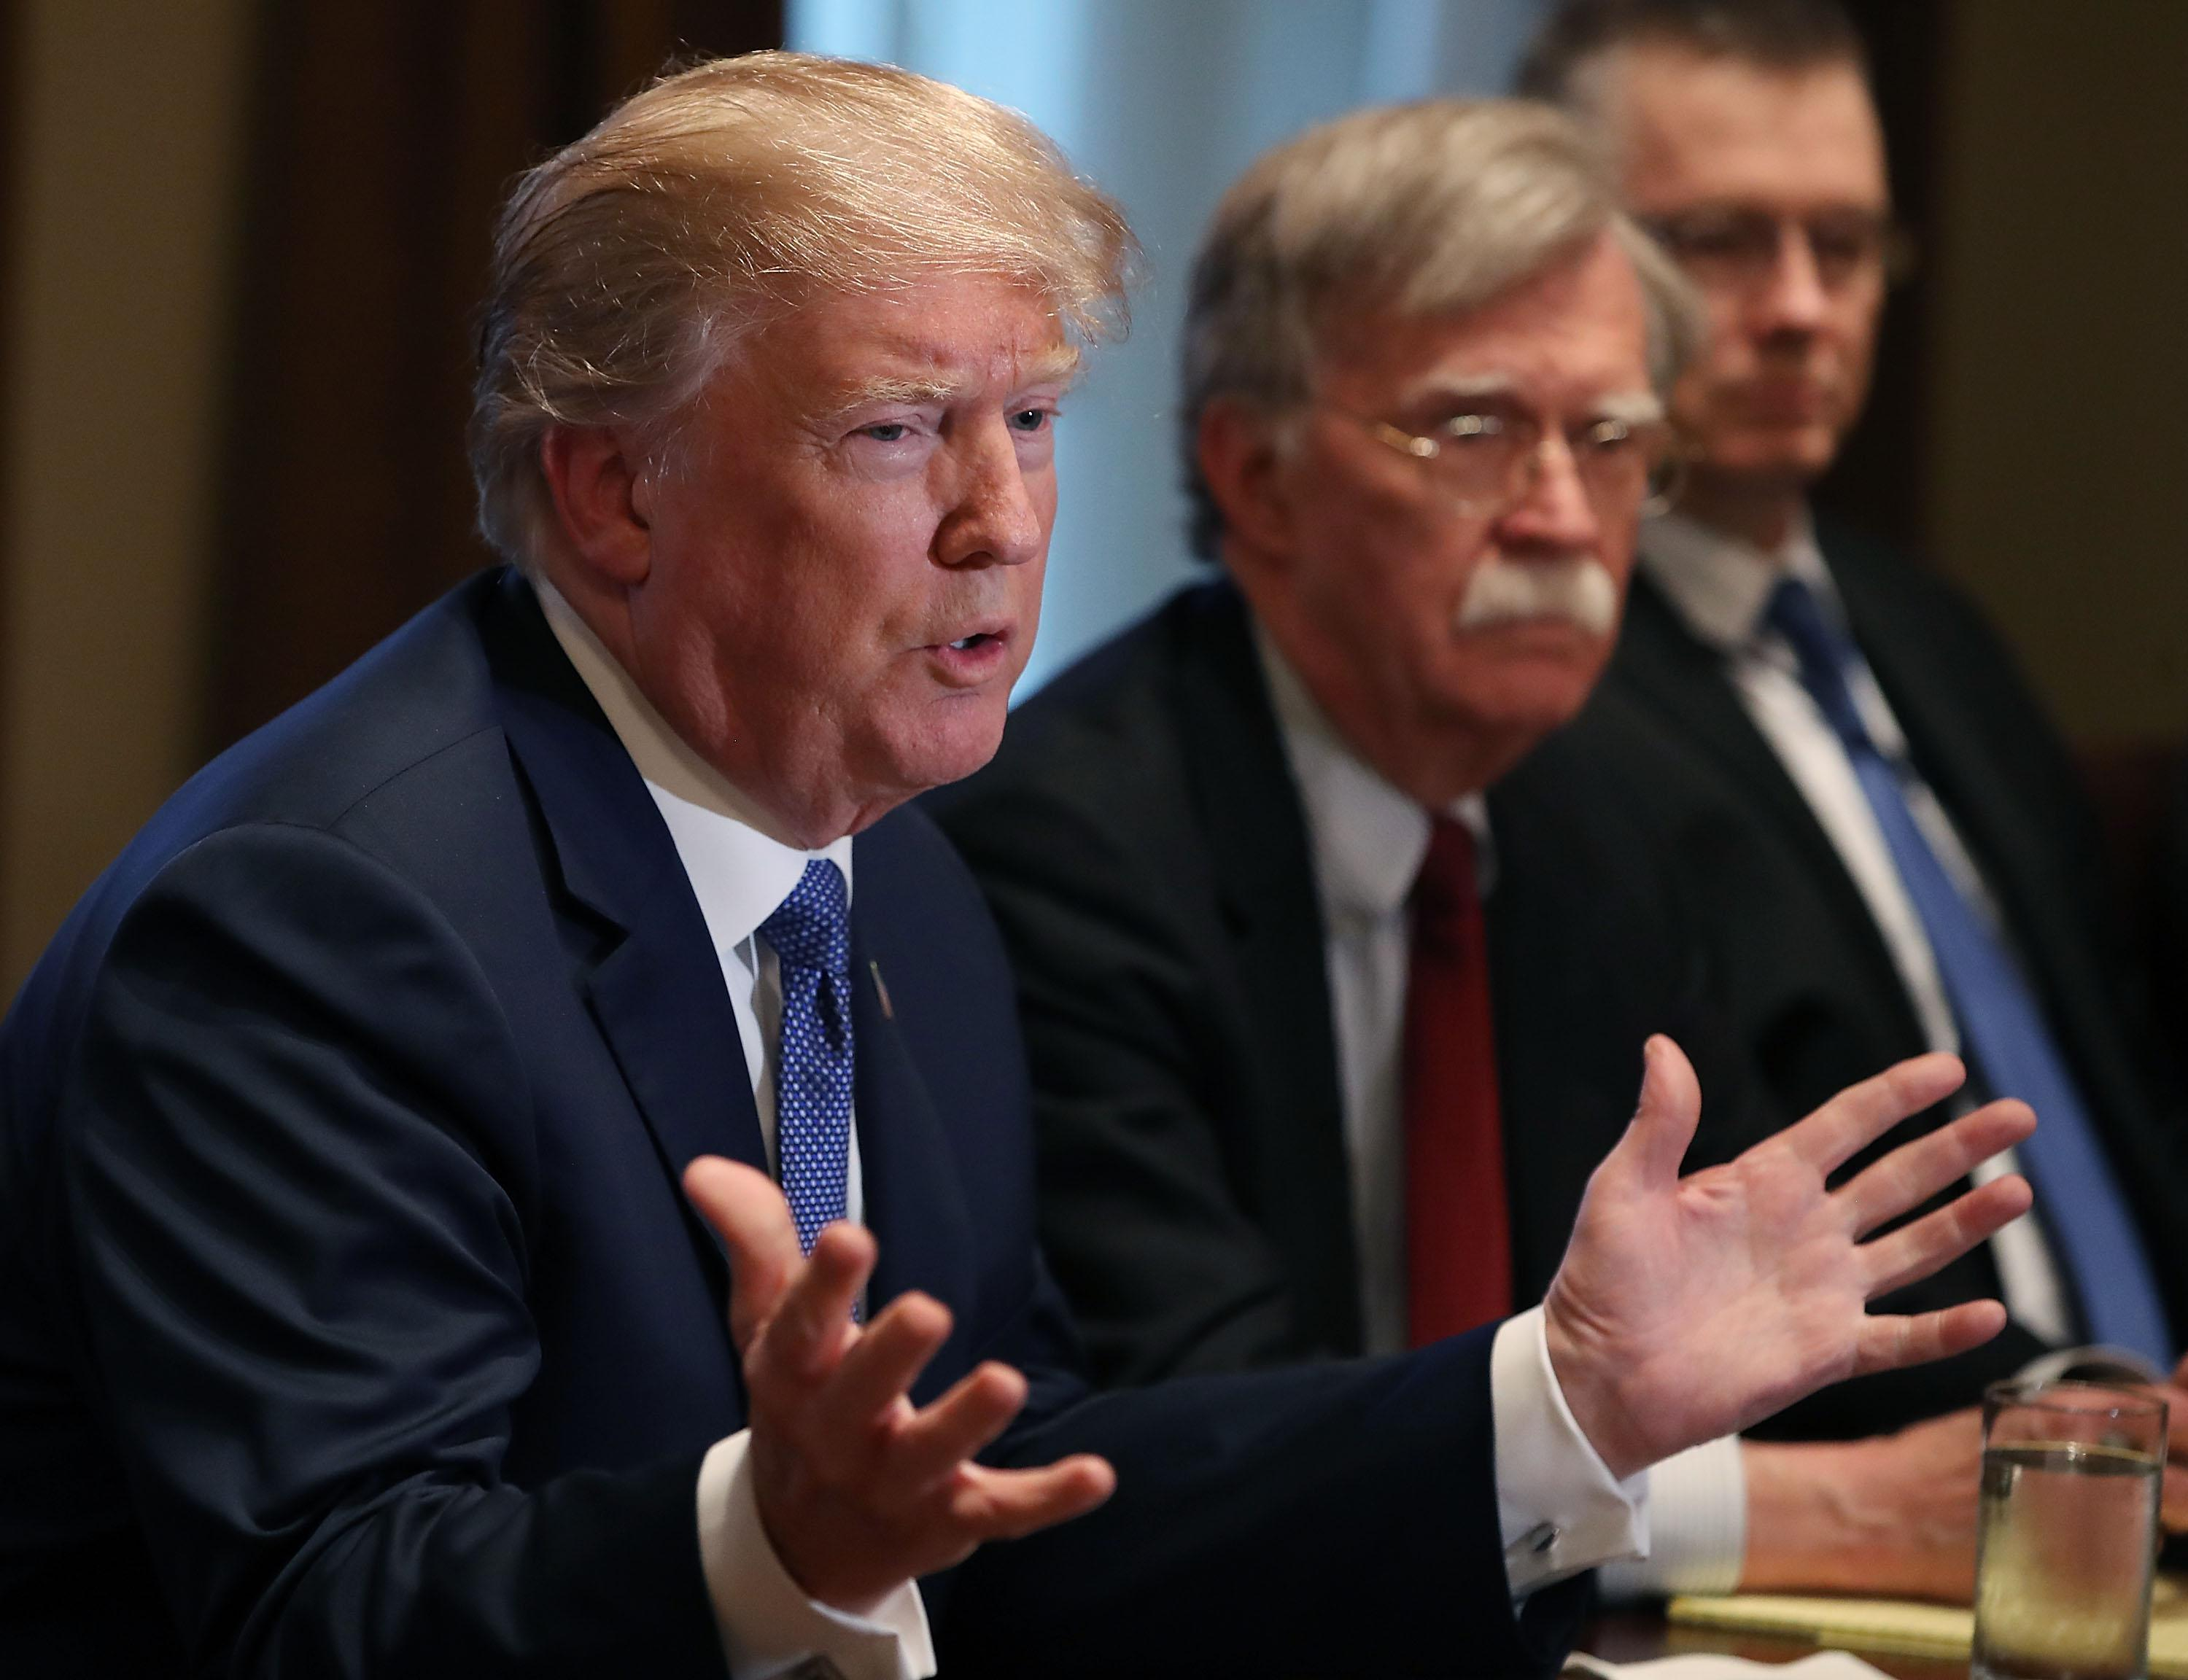 WASHINGTON, DC - APRIL 09:  U.S. President Donald Trump is flanked by National Security Advisor John Bolton as he speaks about the FBI raid at his lawyer Michael Cohen's office, while receiving a briefing from senior military leaders regarding Syria,  in the Cabinet Room, on April 9, 2018 in Washington, DC. The FBI raided the office of Michael Cohen on Monday as part of the ongoing investigation into the president's administration. (Photo by Mark Wilson/Getty Images)